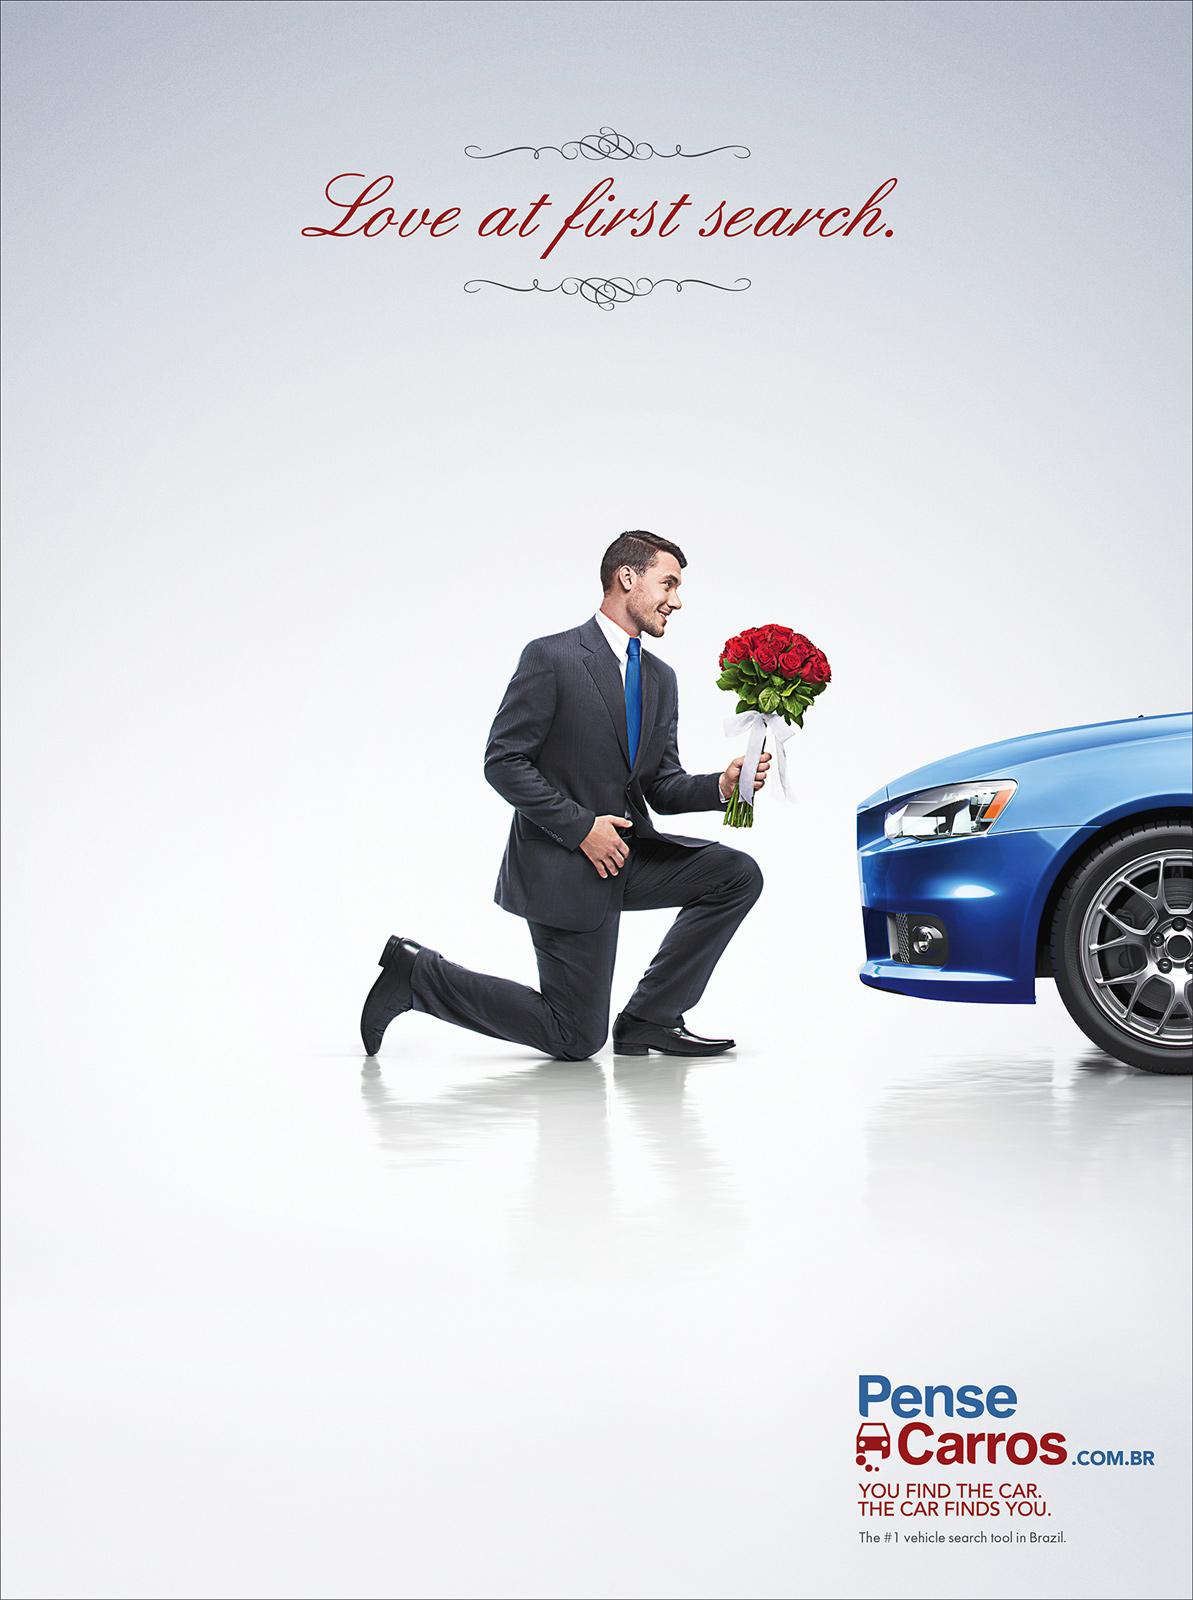 Pense Carros Print Ad -  Love at the first search, guy